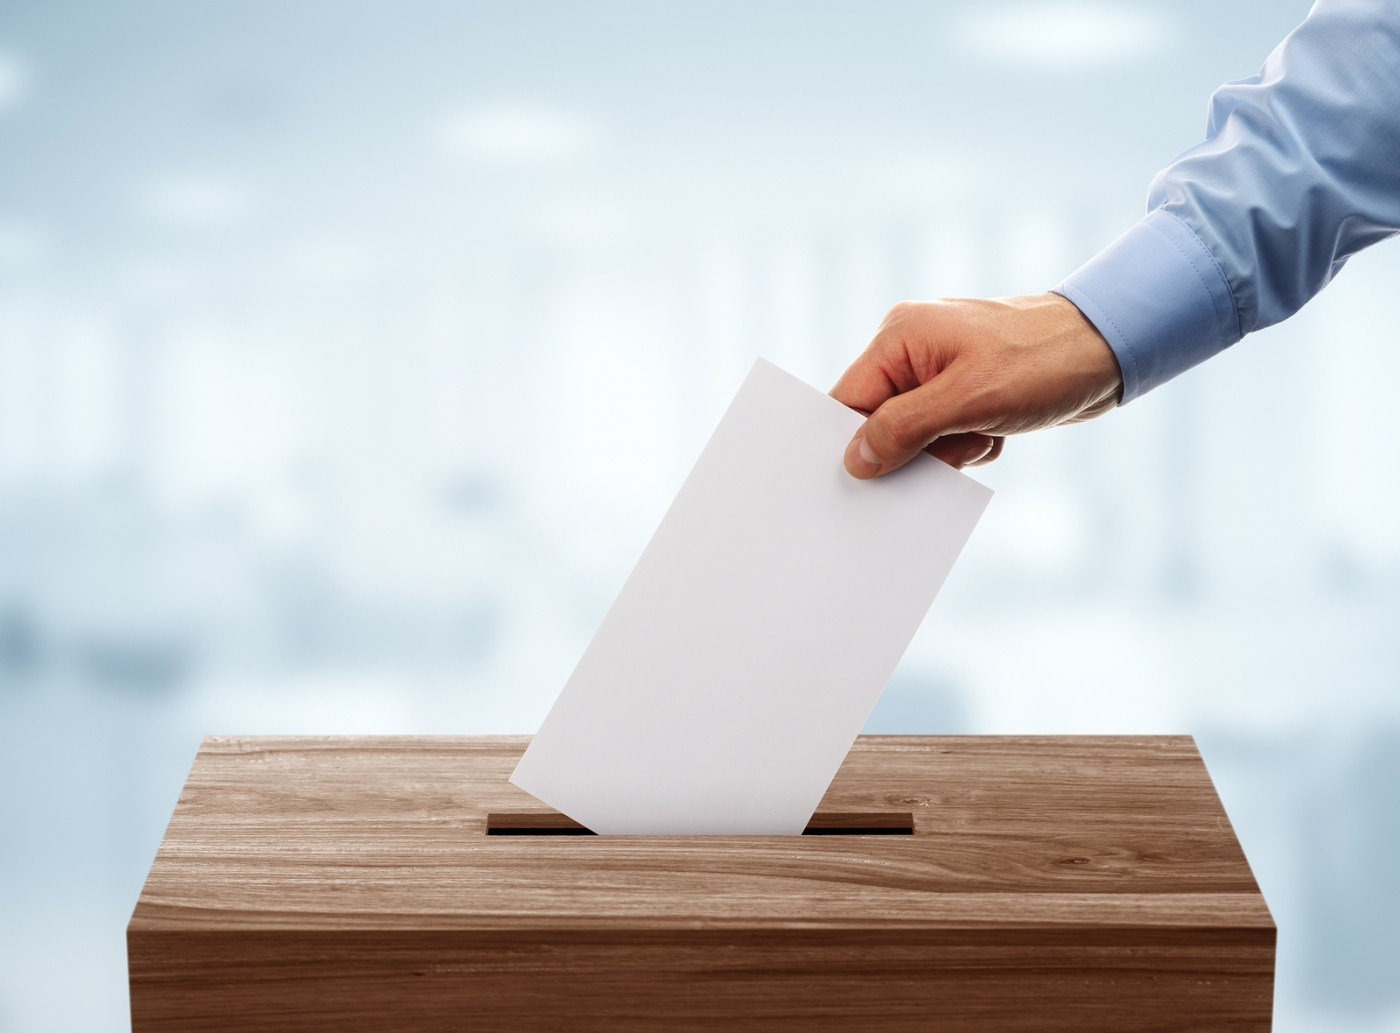 List of MEP Candidates and their Position on Abortion